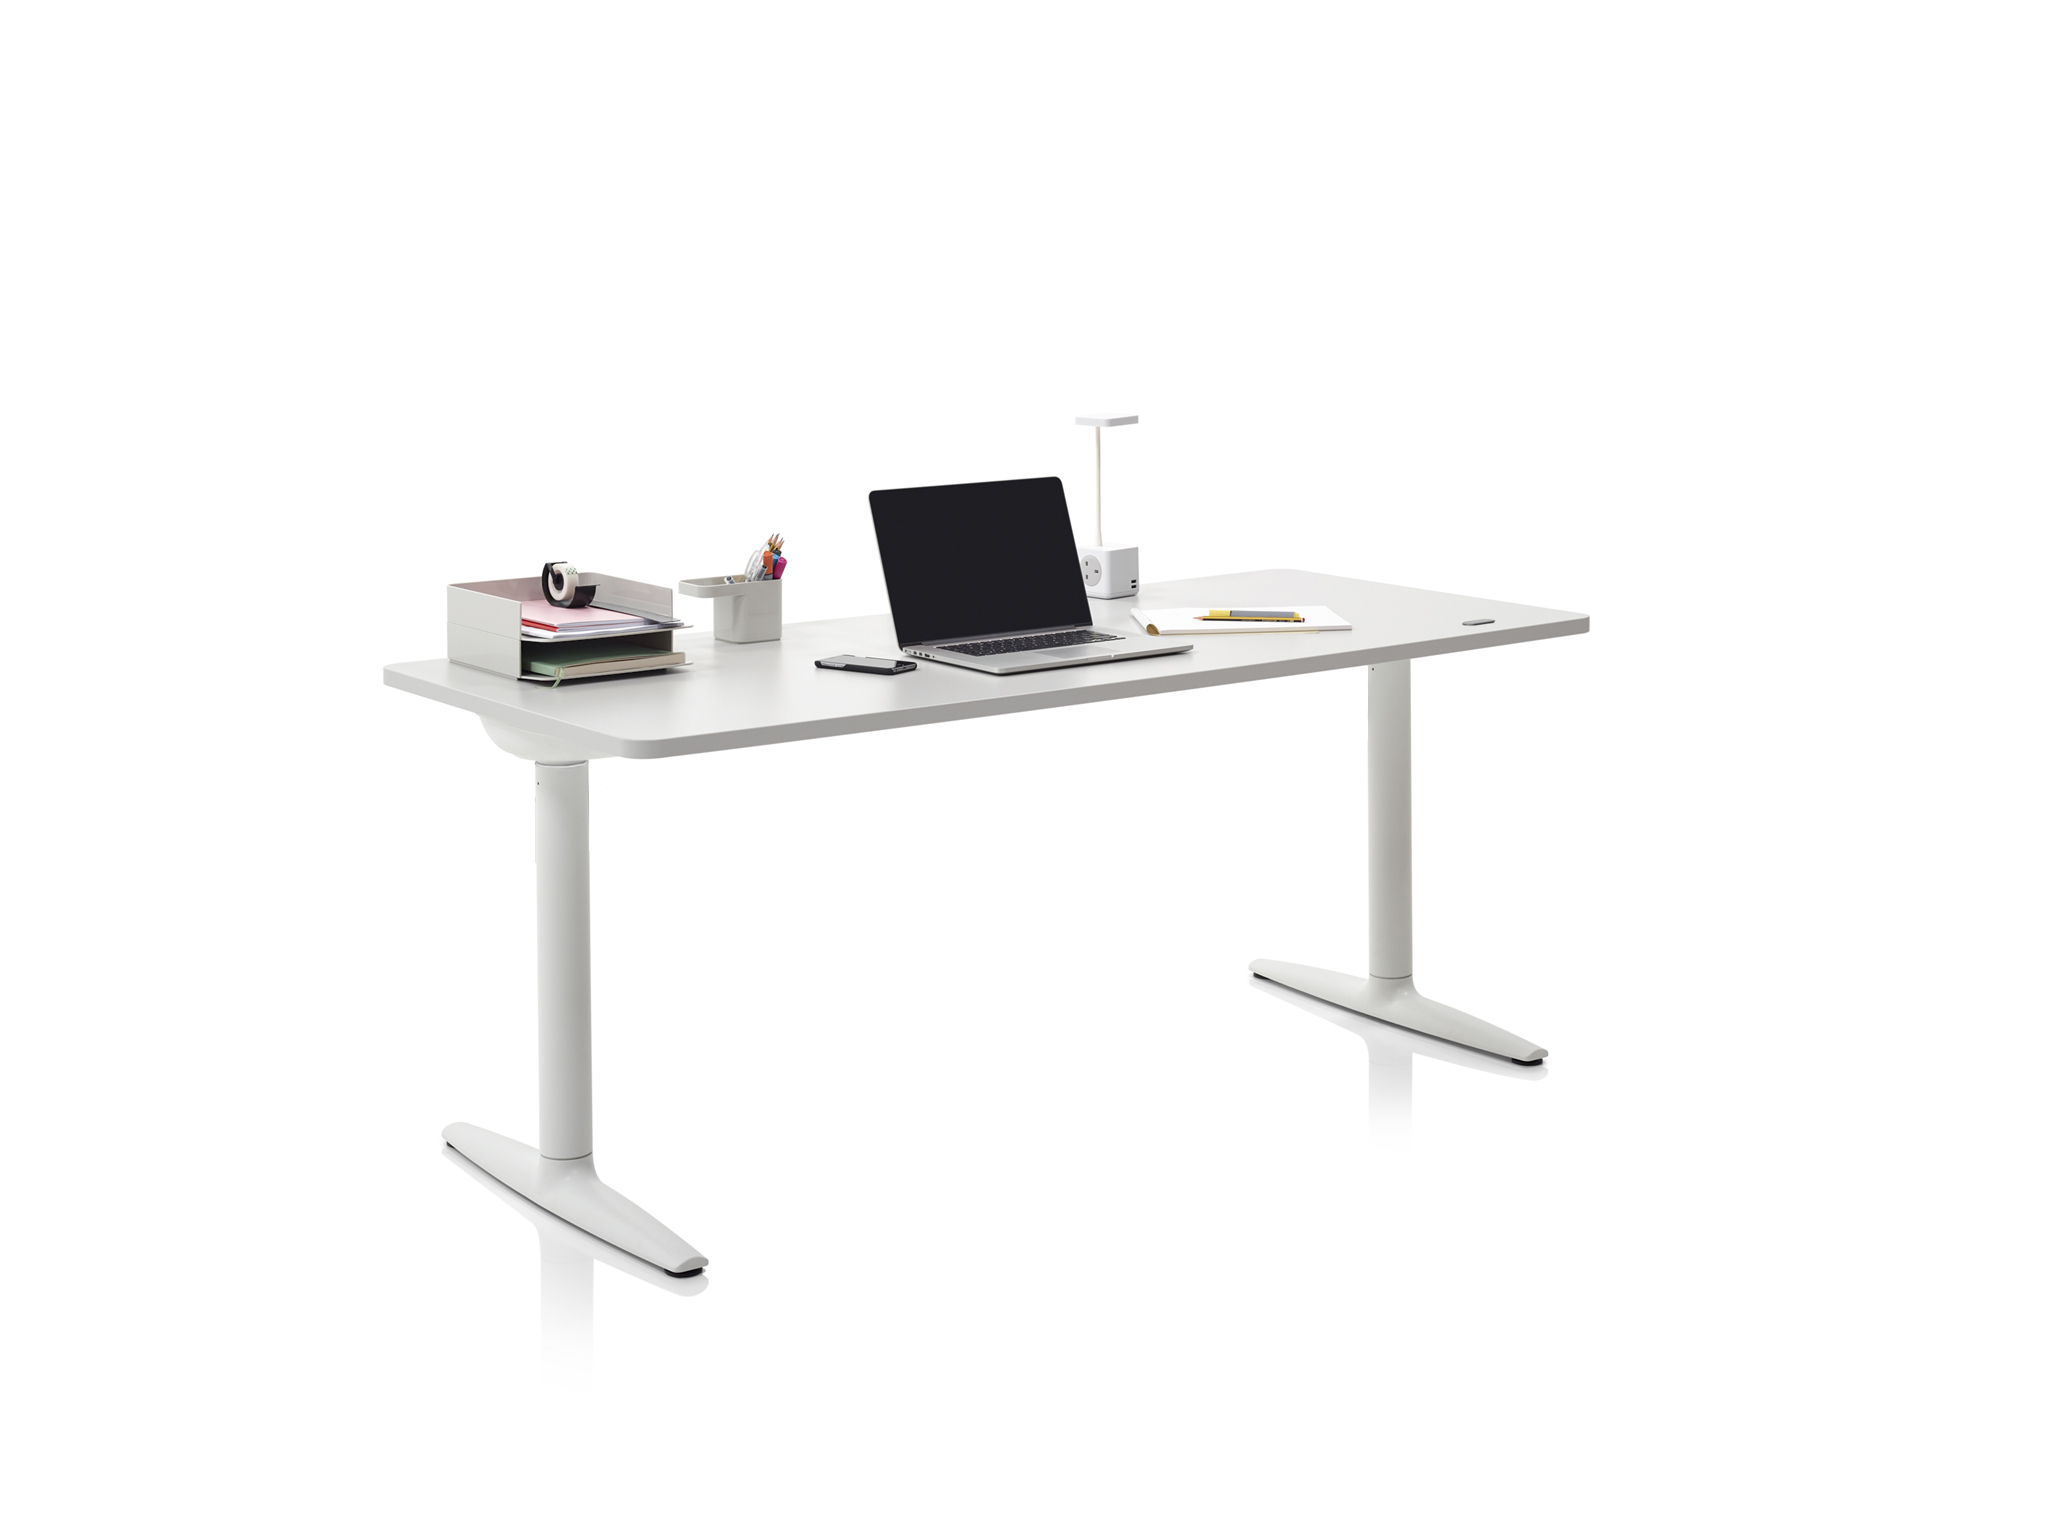 Atlas Height-Adjustable Desk (Value at HK$8,835) - Limited Quota: 5 units